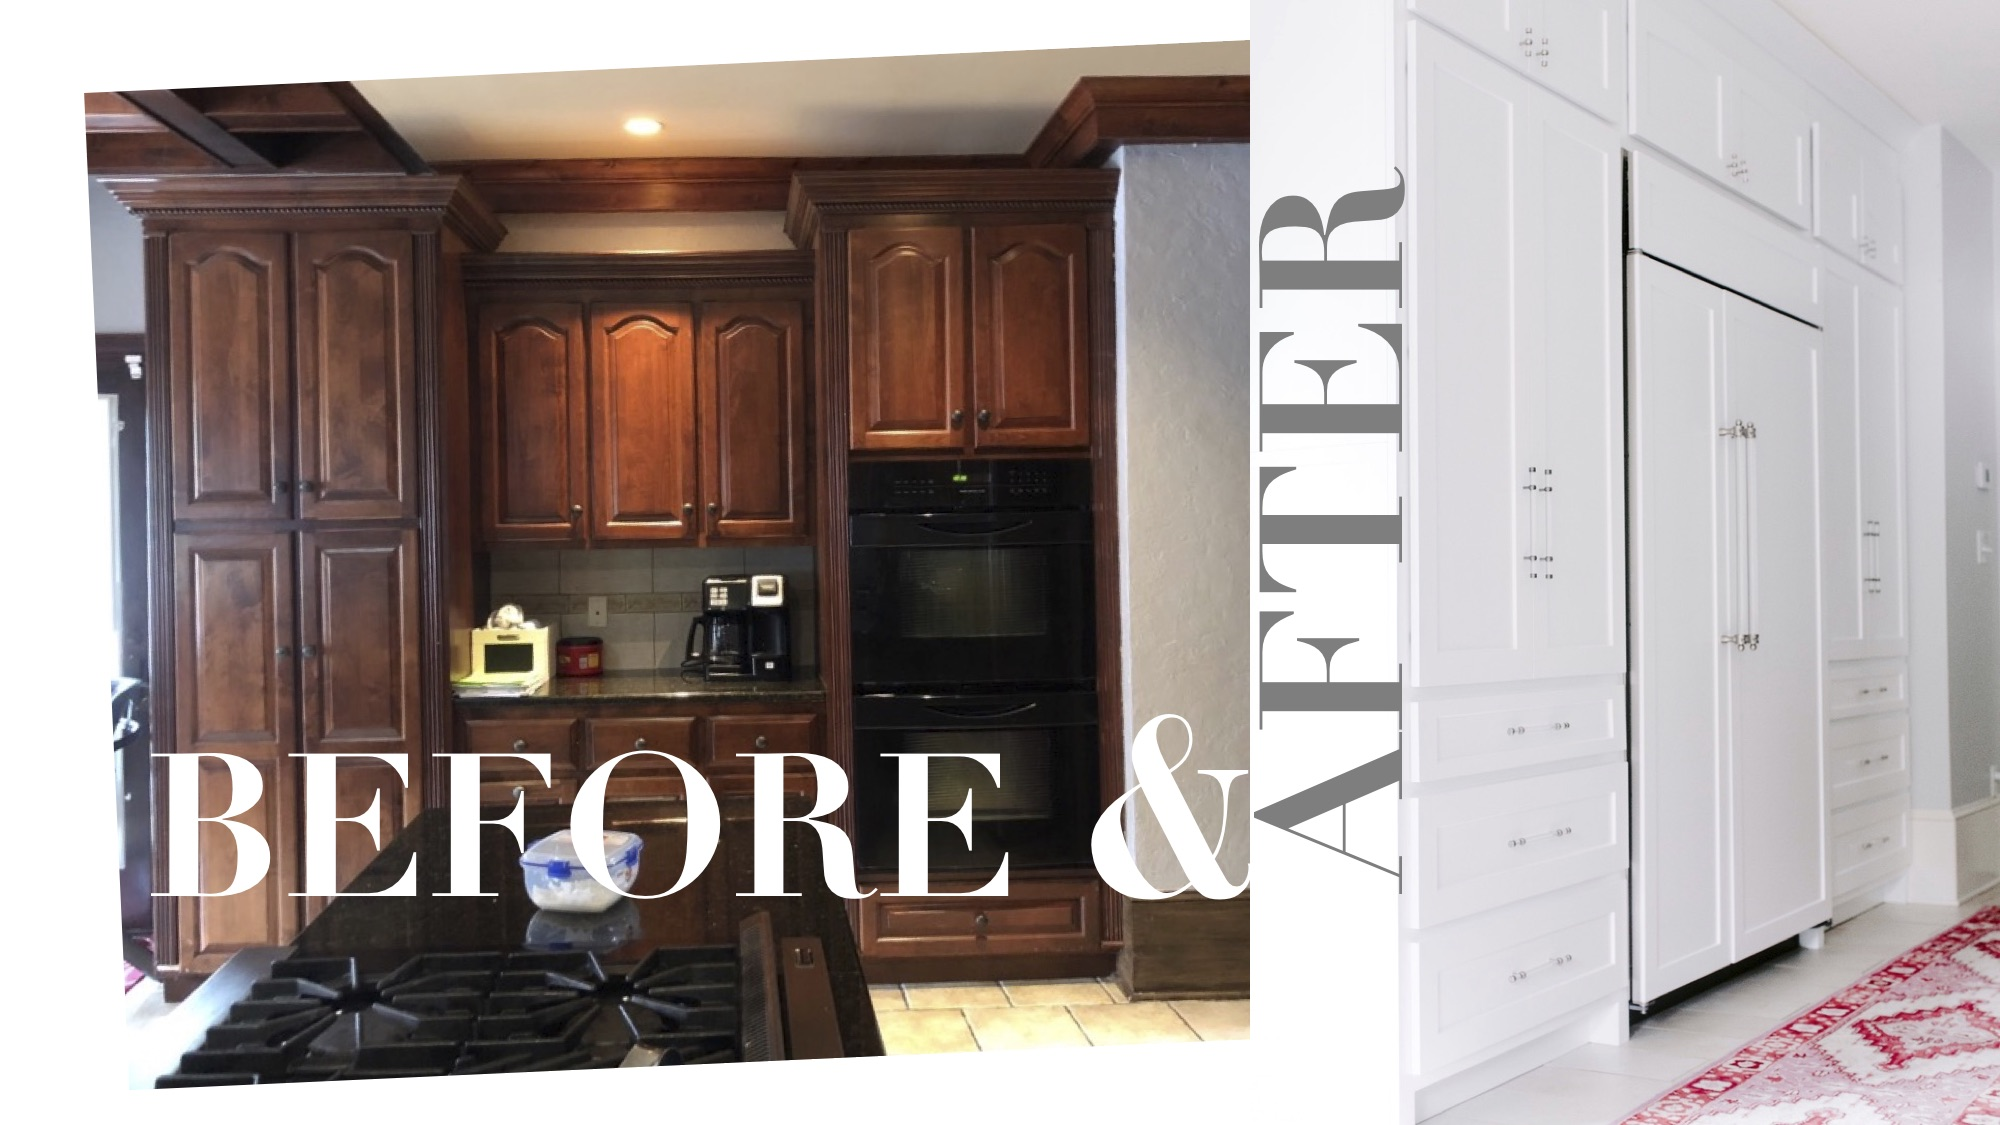 In order to create a beautiful hood along the wall where the fridge used to be, we moved the refrigerator to the center of this wall. We used a sub-zero panel ready refrigerator to make this wall clean, contemporary and more symmetrical. A pair of pantry cupboards flank the fridge.